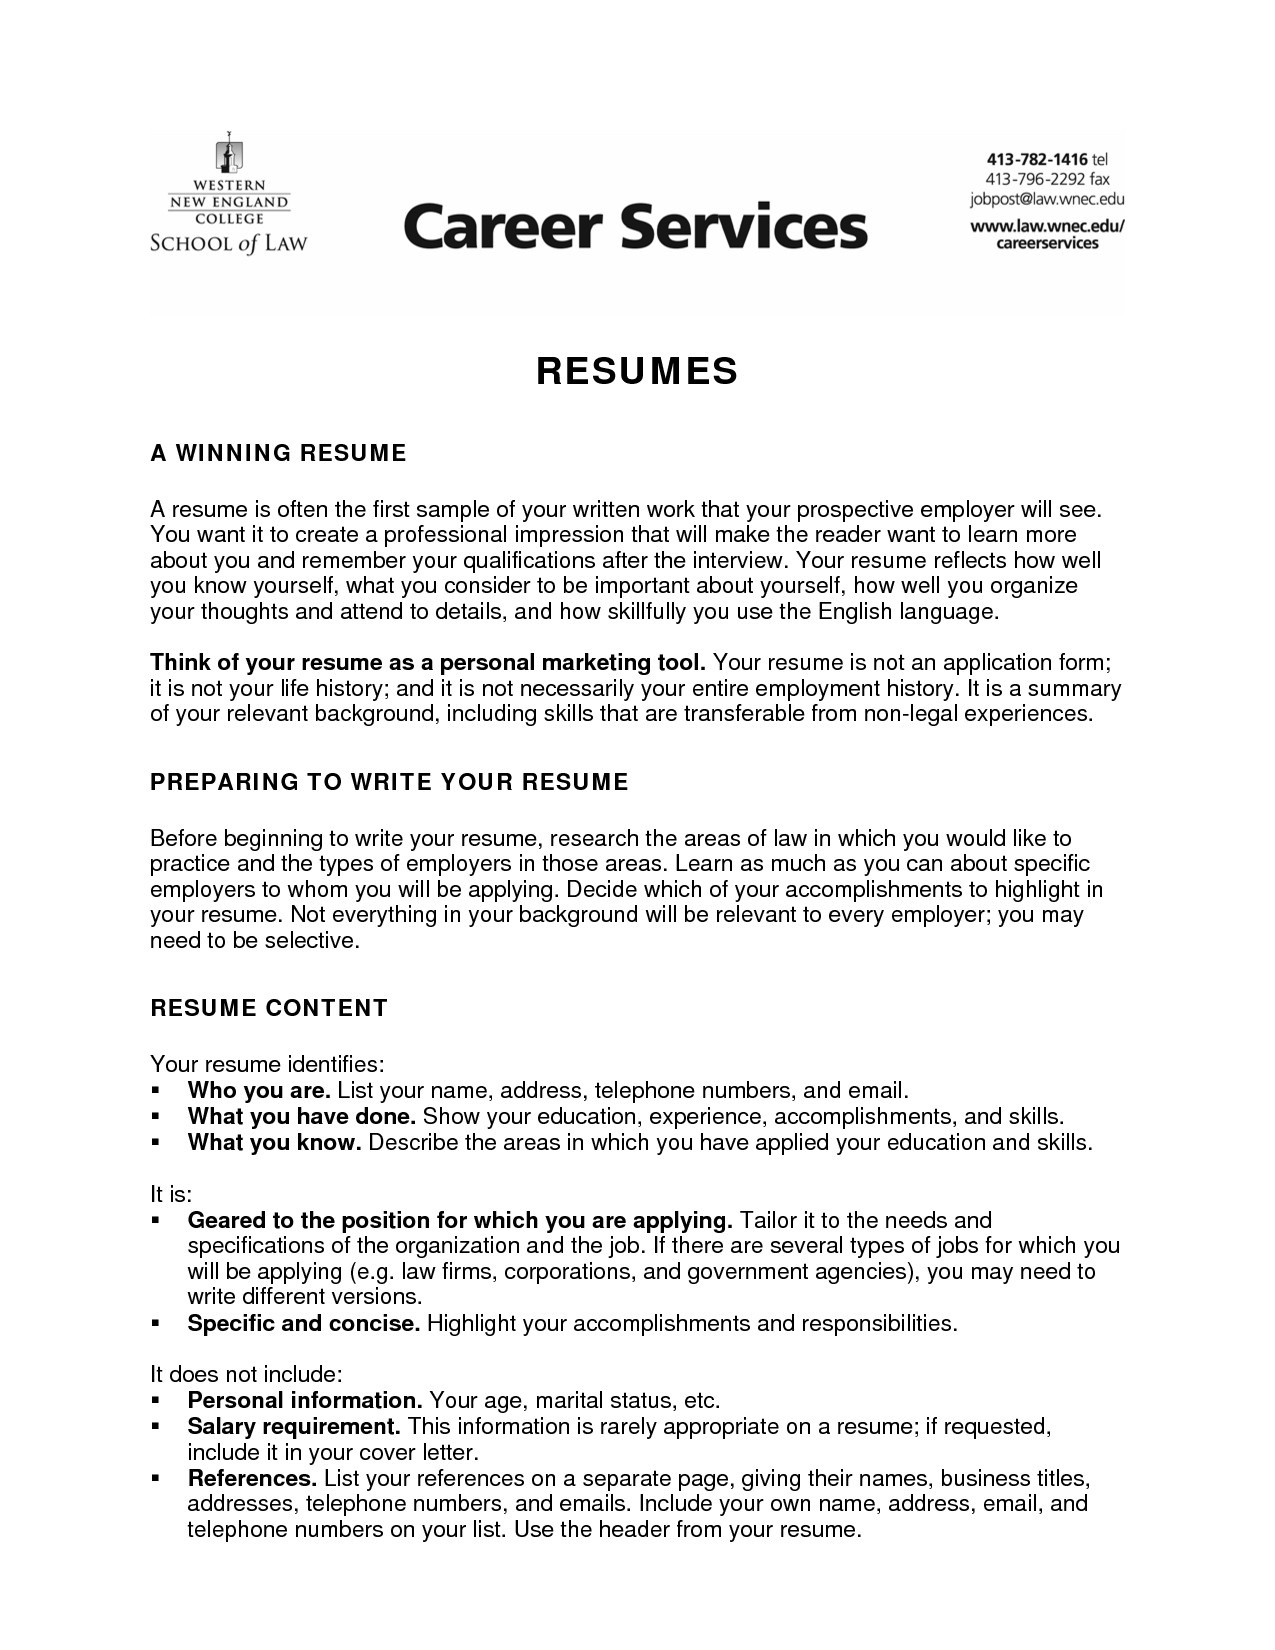 Career Center Resume - Nursing Resume Objective Examples Best Elegant Good Nursing